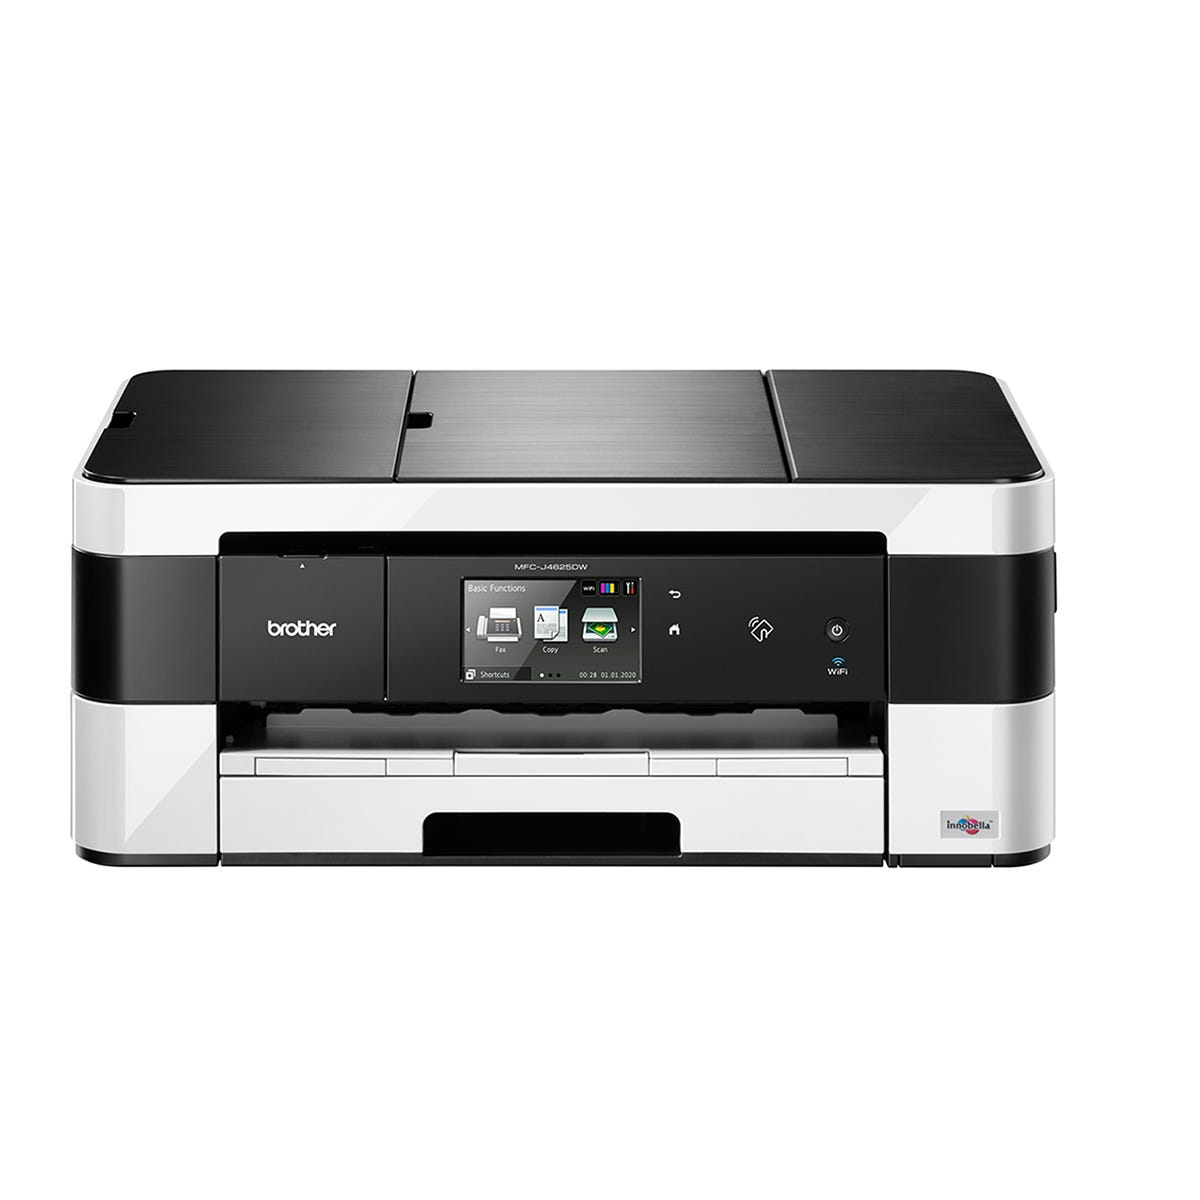 Brother MFCJ4625DW Inkjet All-in-One A3 Printer